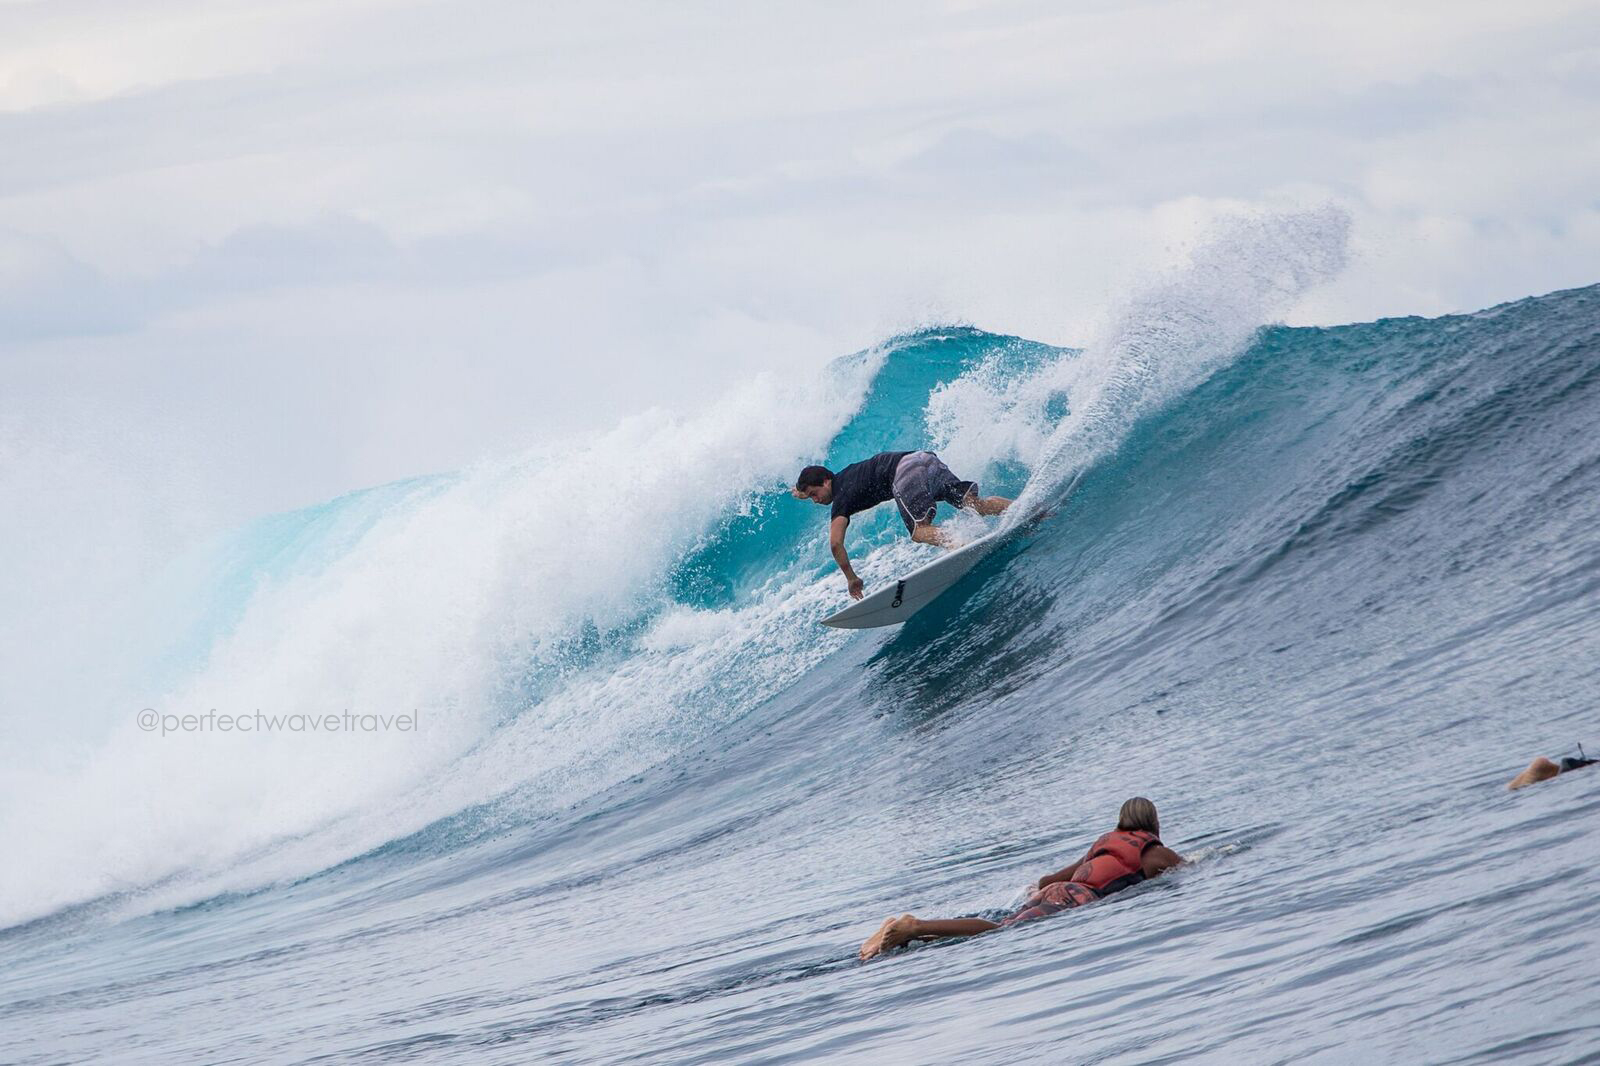 11-jito-chadha-finding-some-open-face-out-at-cloudbreak_preview